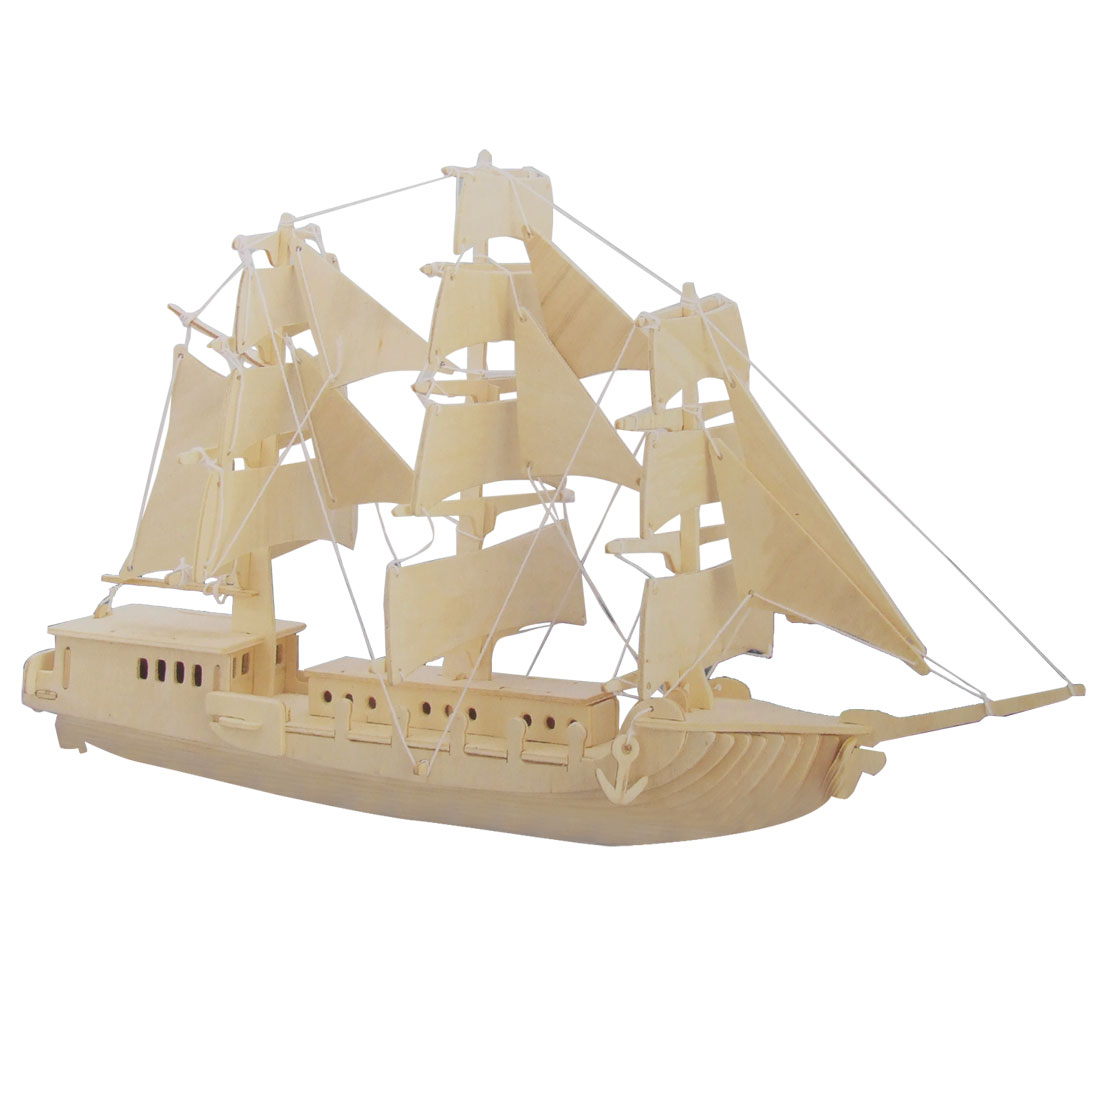 European Tall Ship Model Wood Construction Kit DIY Puzzle Toy